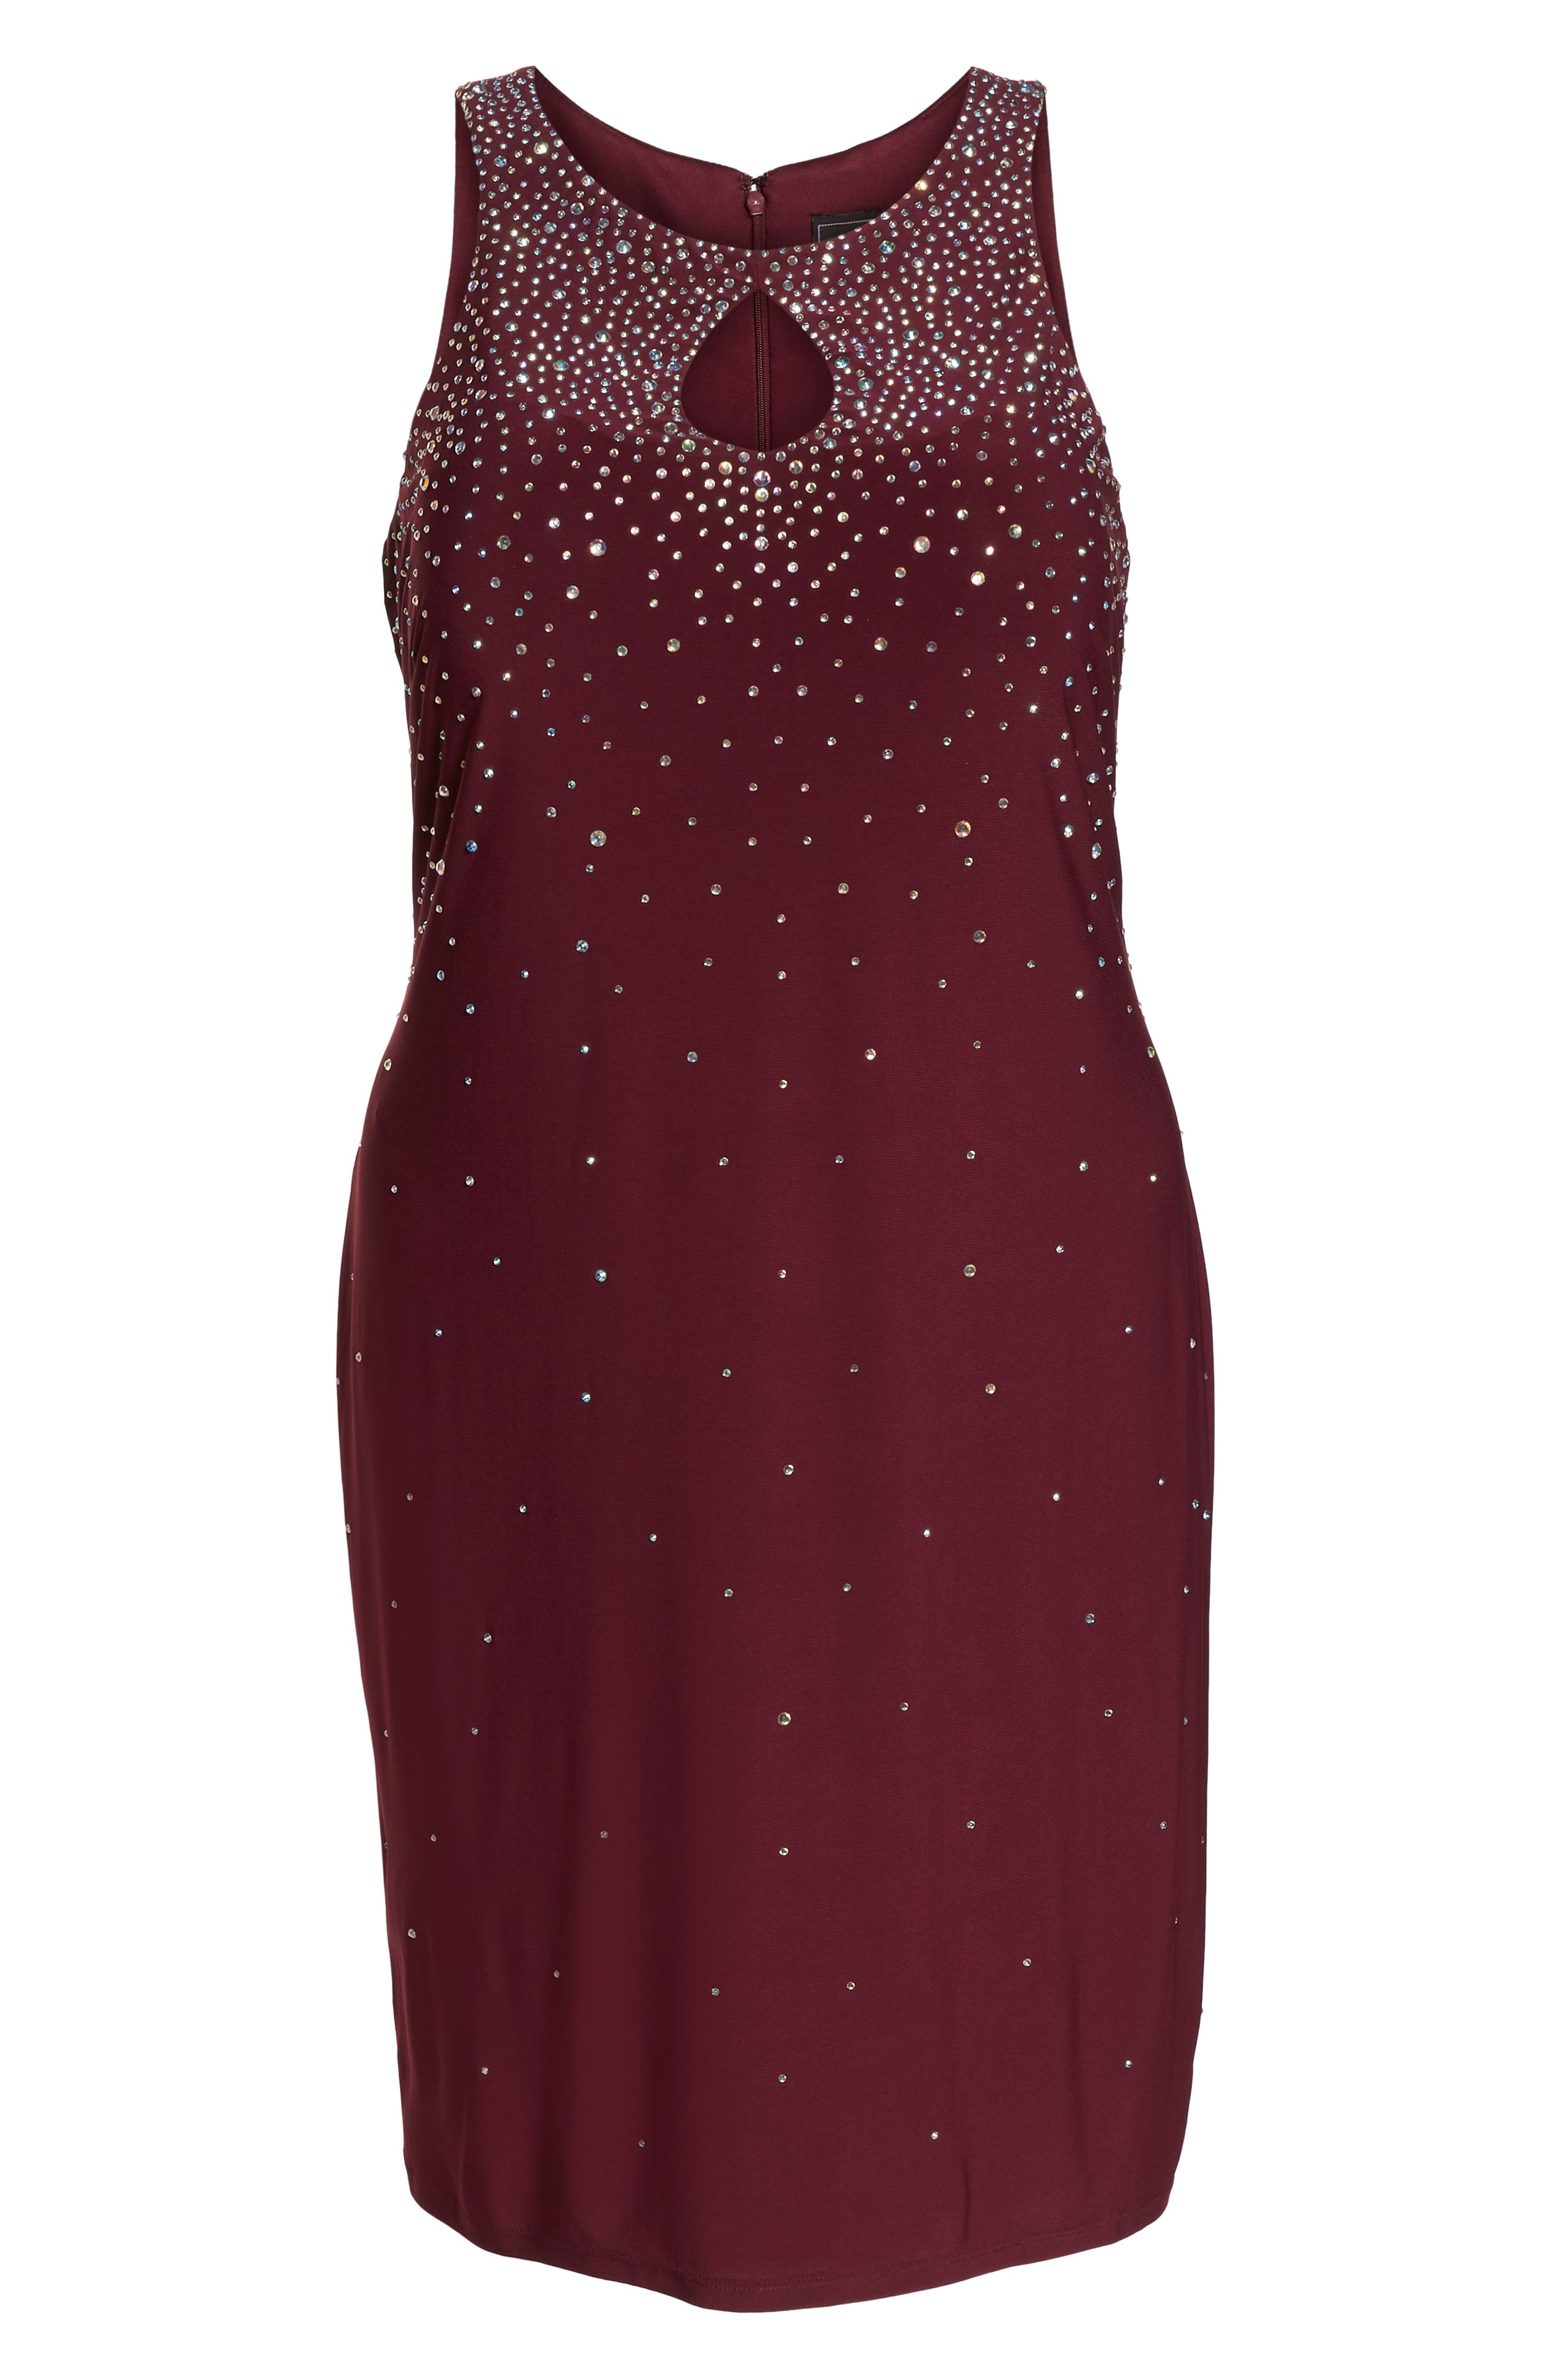 MORGAN & CO., Embellished Keyhole Neck Sheath Dress, Alternate thumbnail 7, color, MERLOT